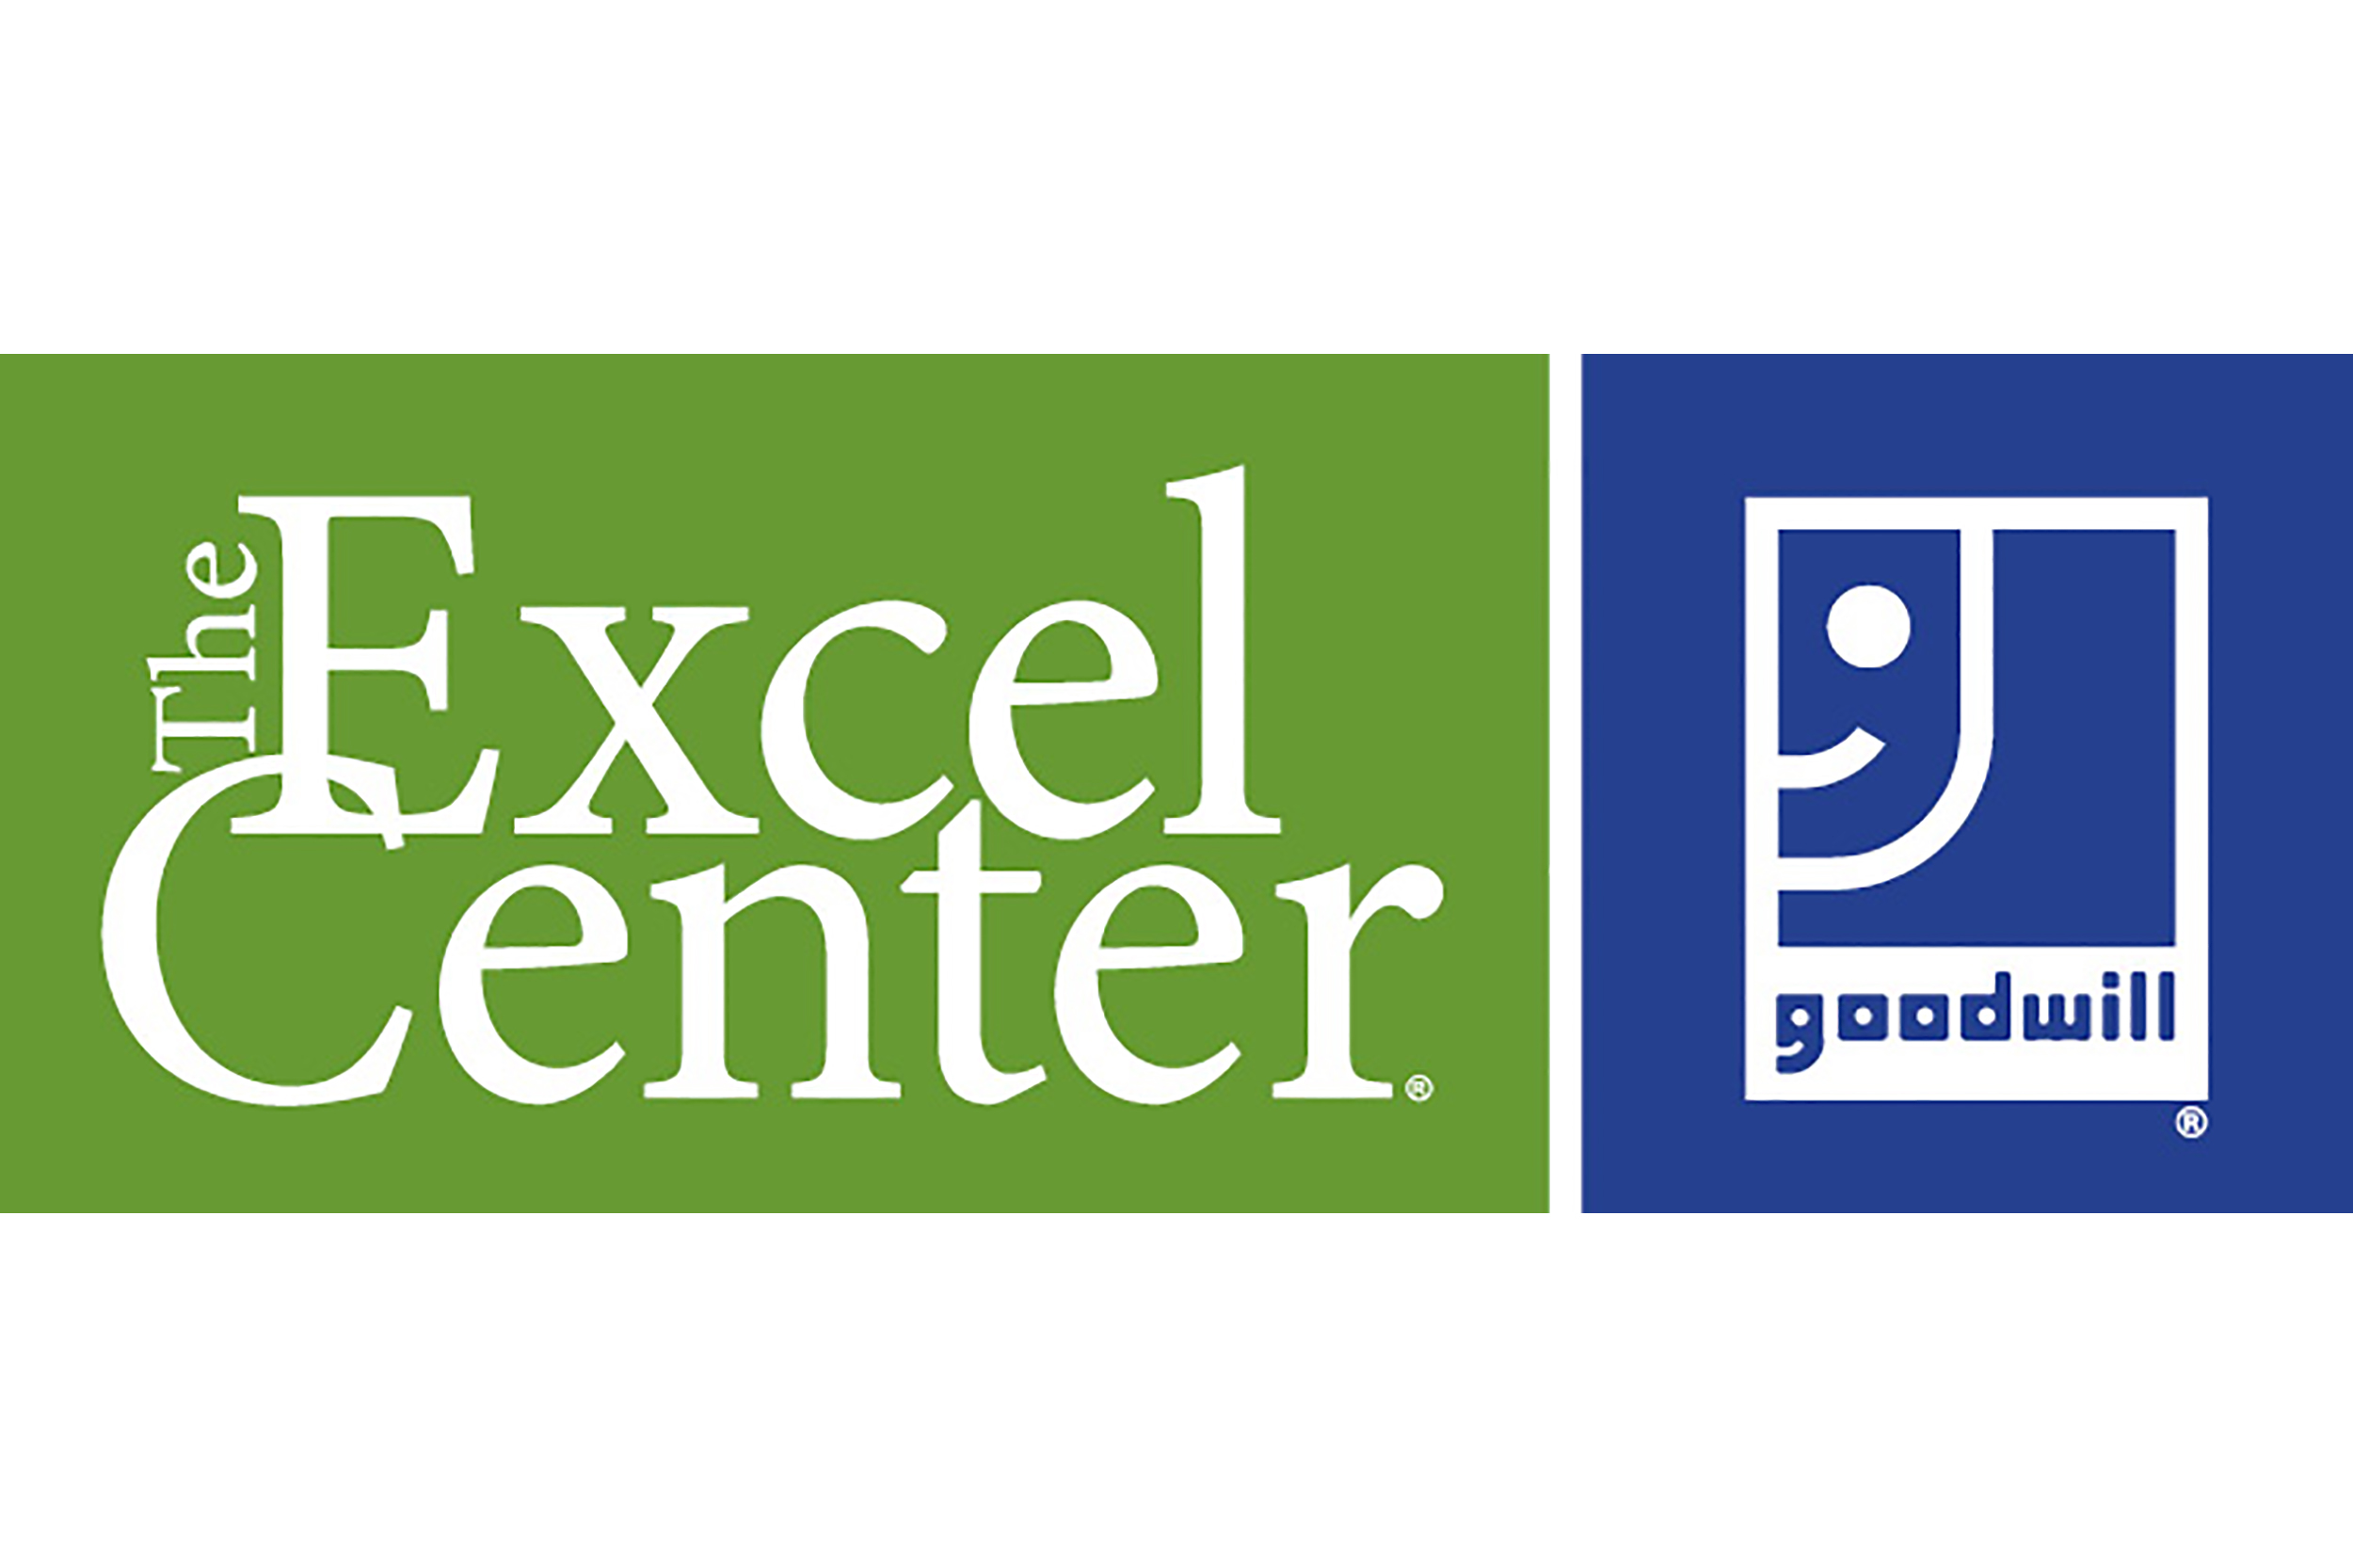 The Excel Center logo.